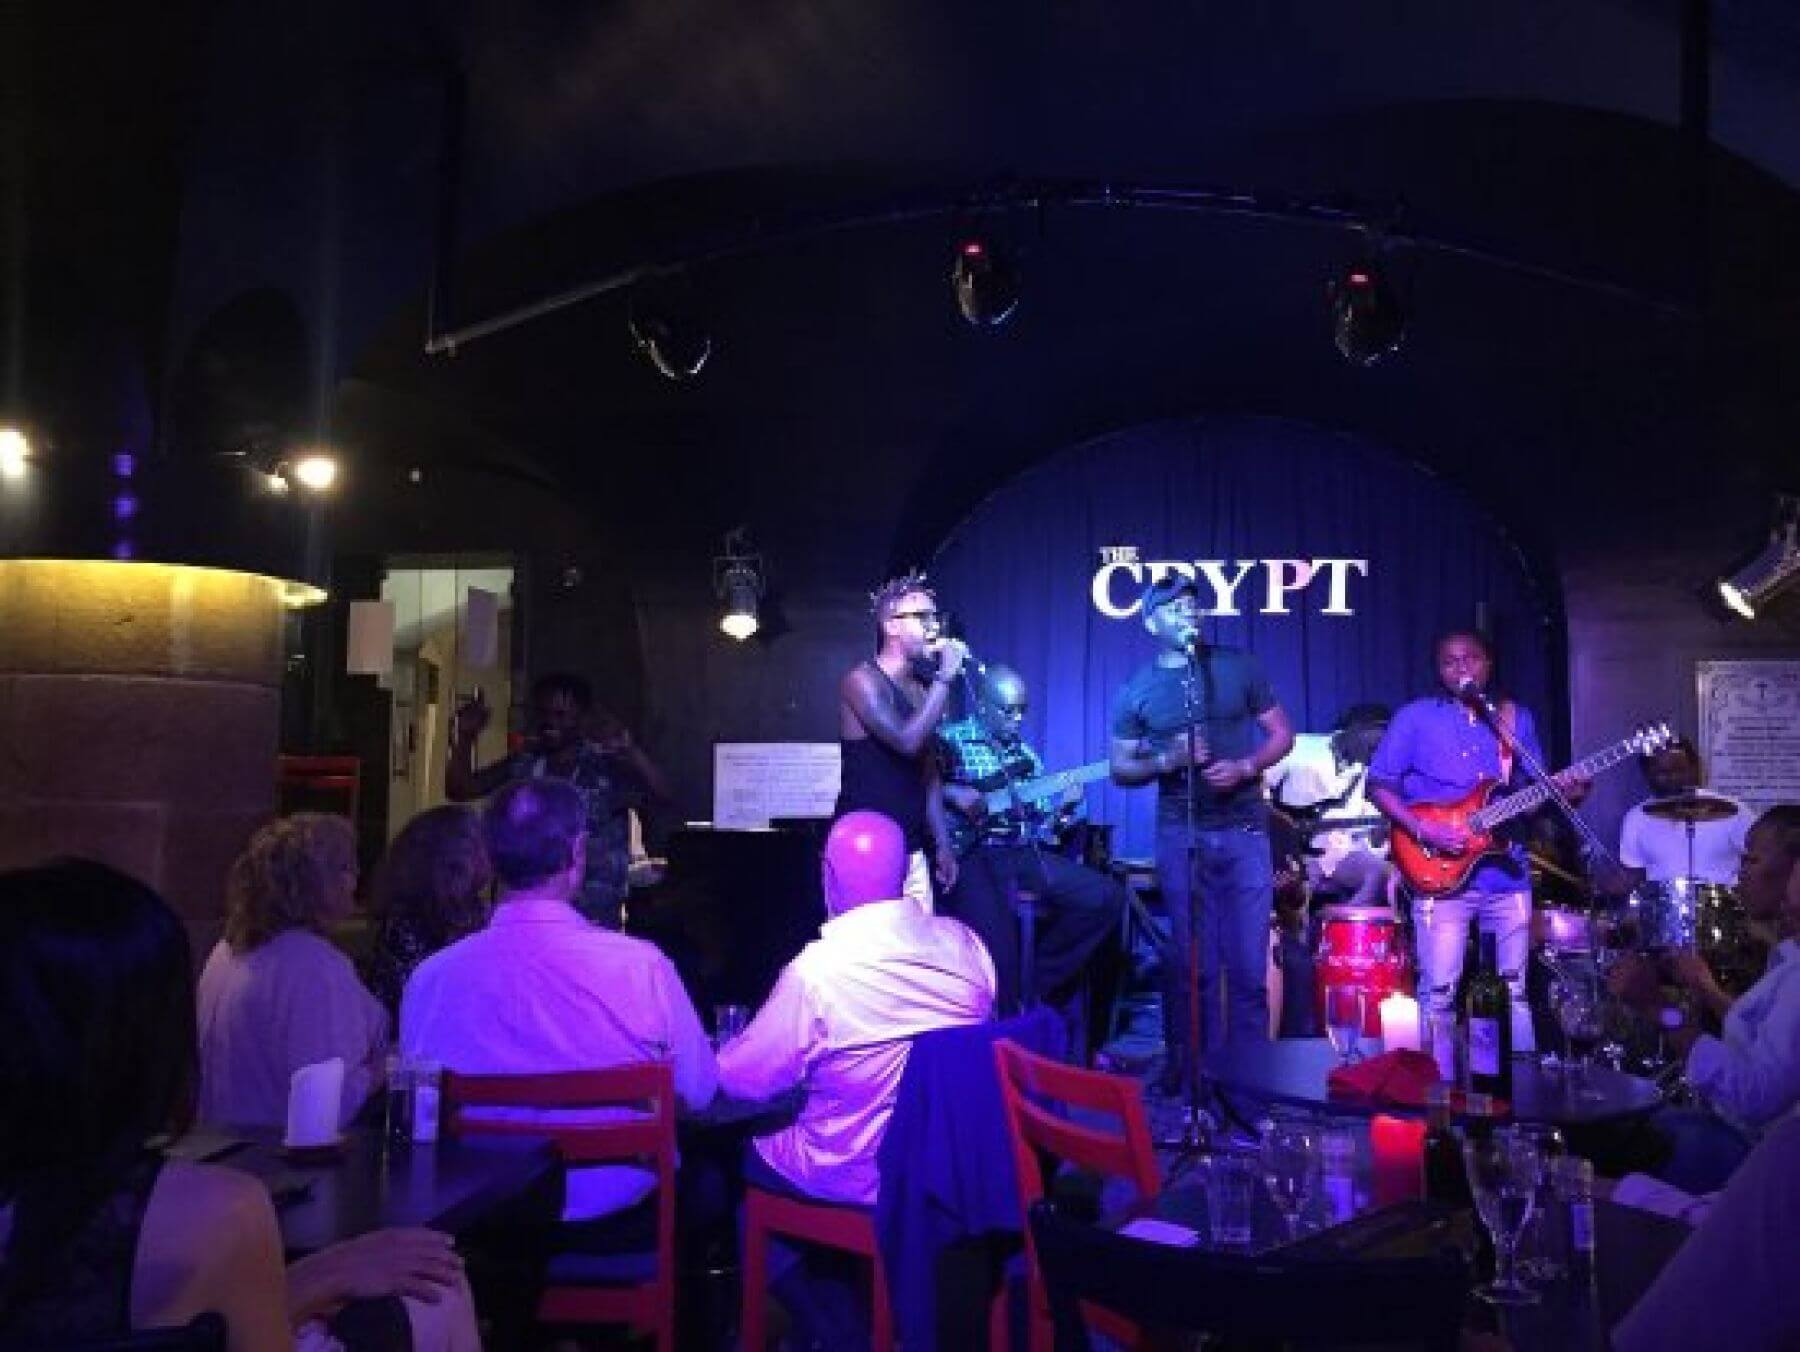 place features live music and Jazz concerts